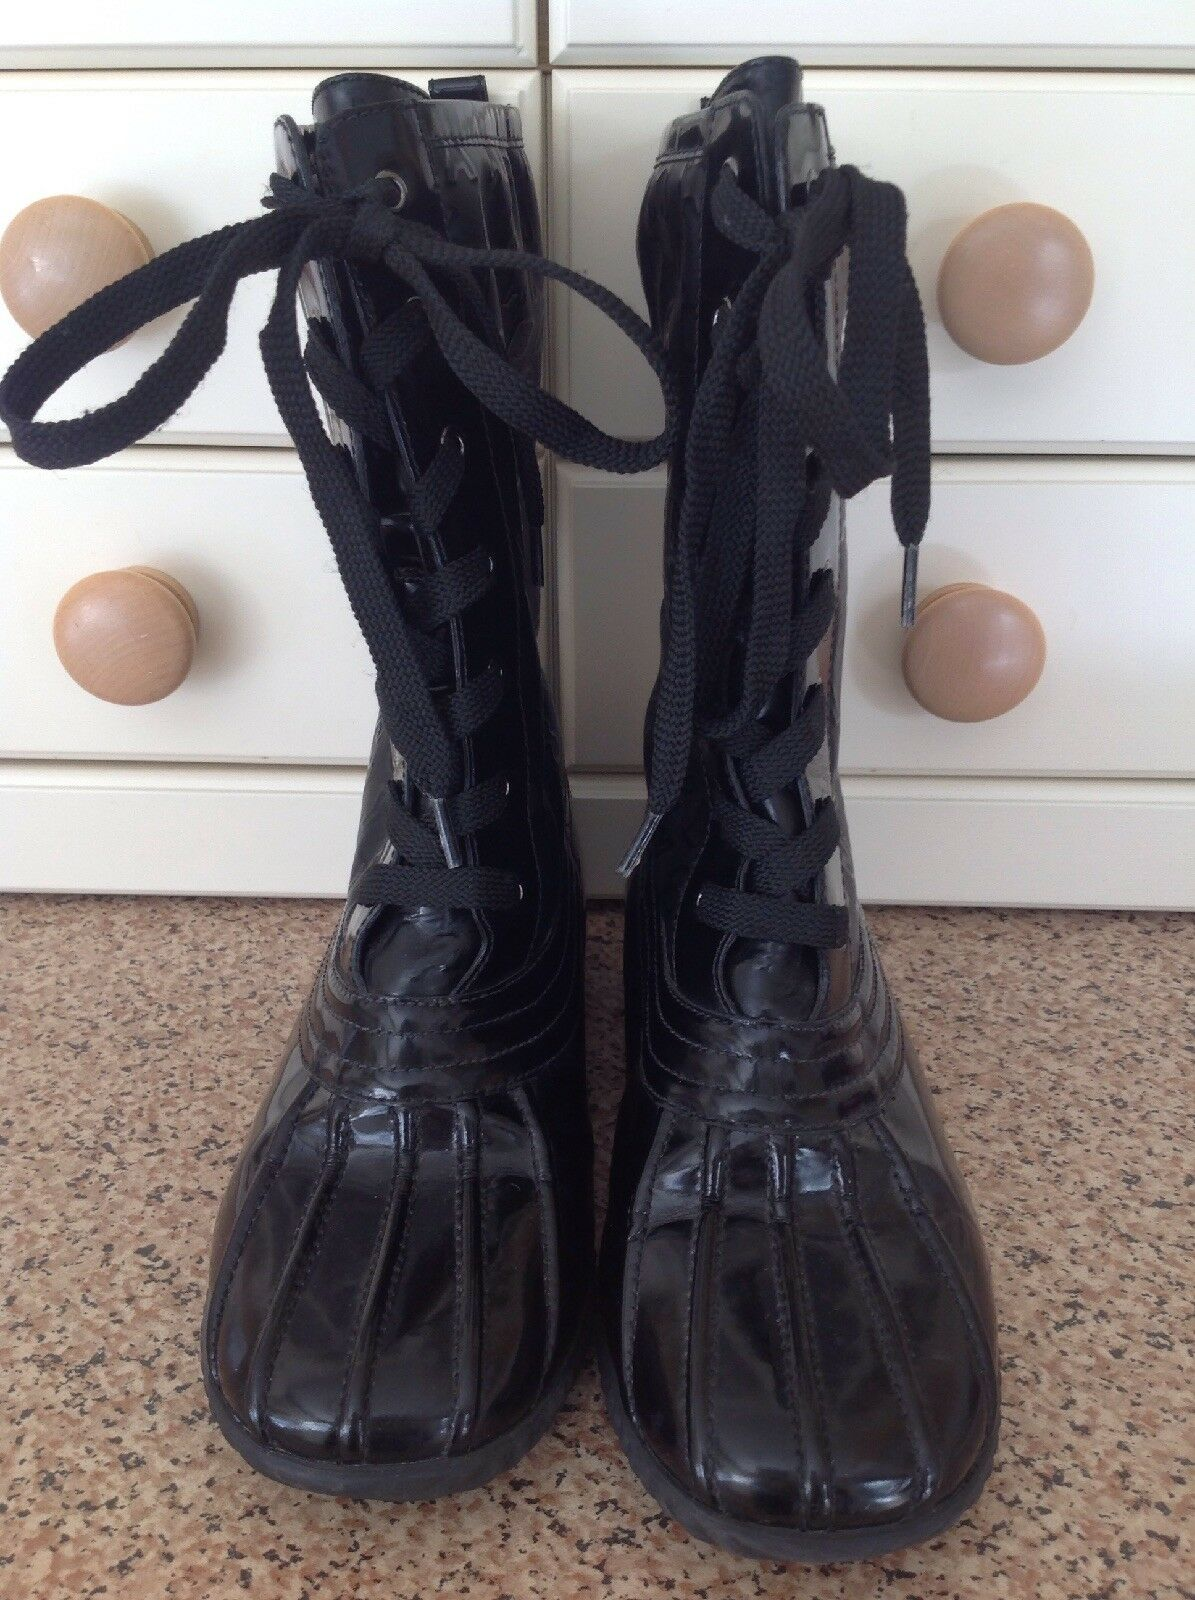 MARC BY MARC JACOBS CALF LENGTH BLACK LACE LACE BLACK UP Stiefel UK SIZE 4.5 BARELY WORN f7a08d